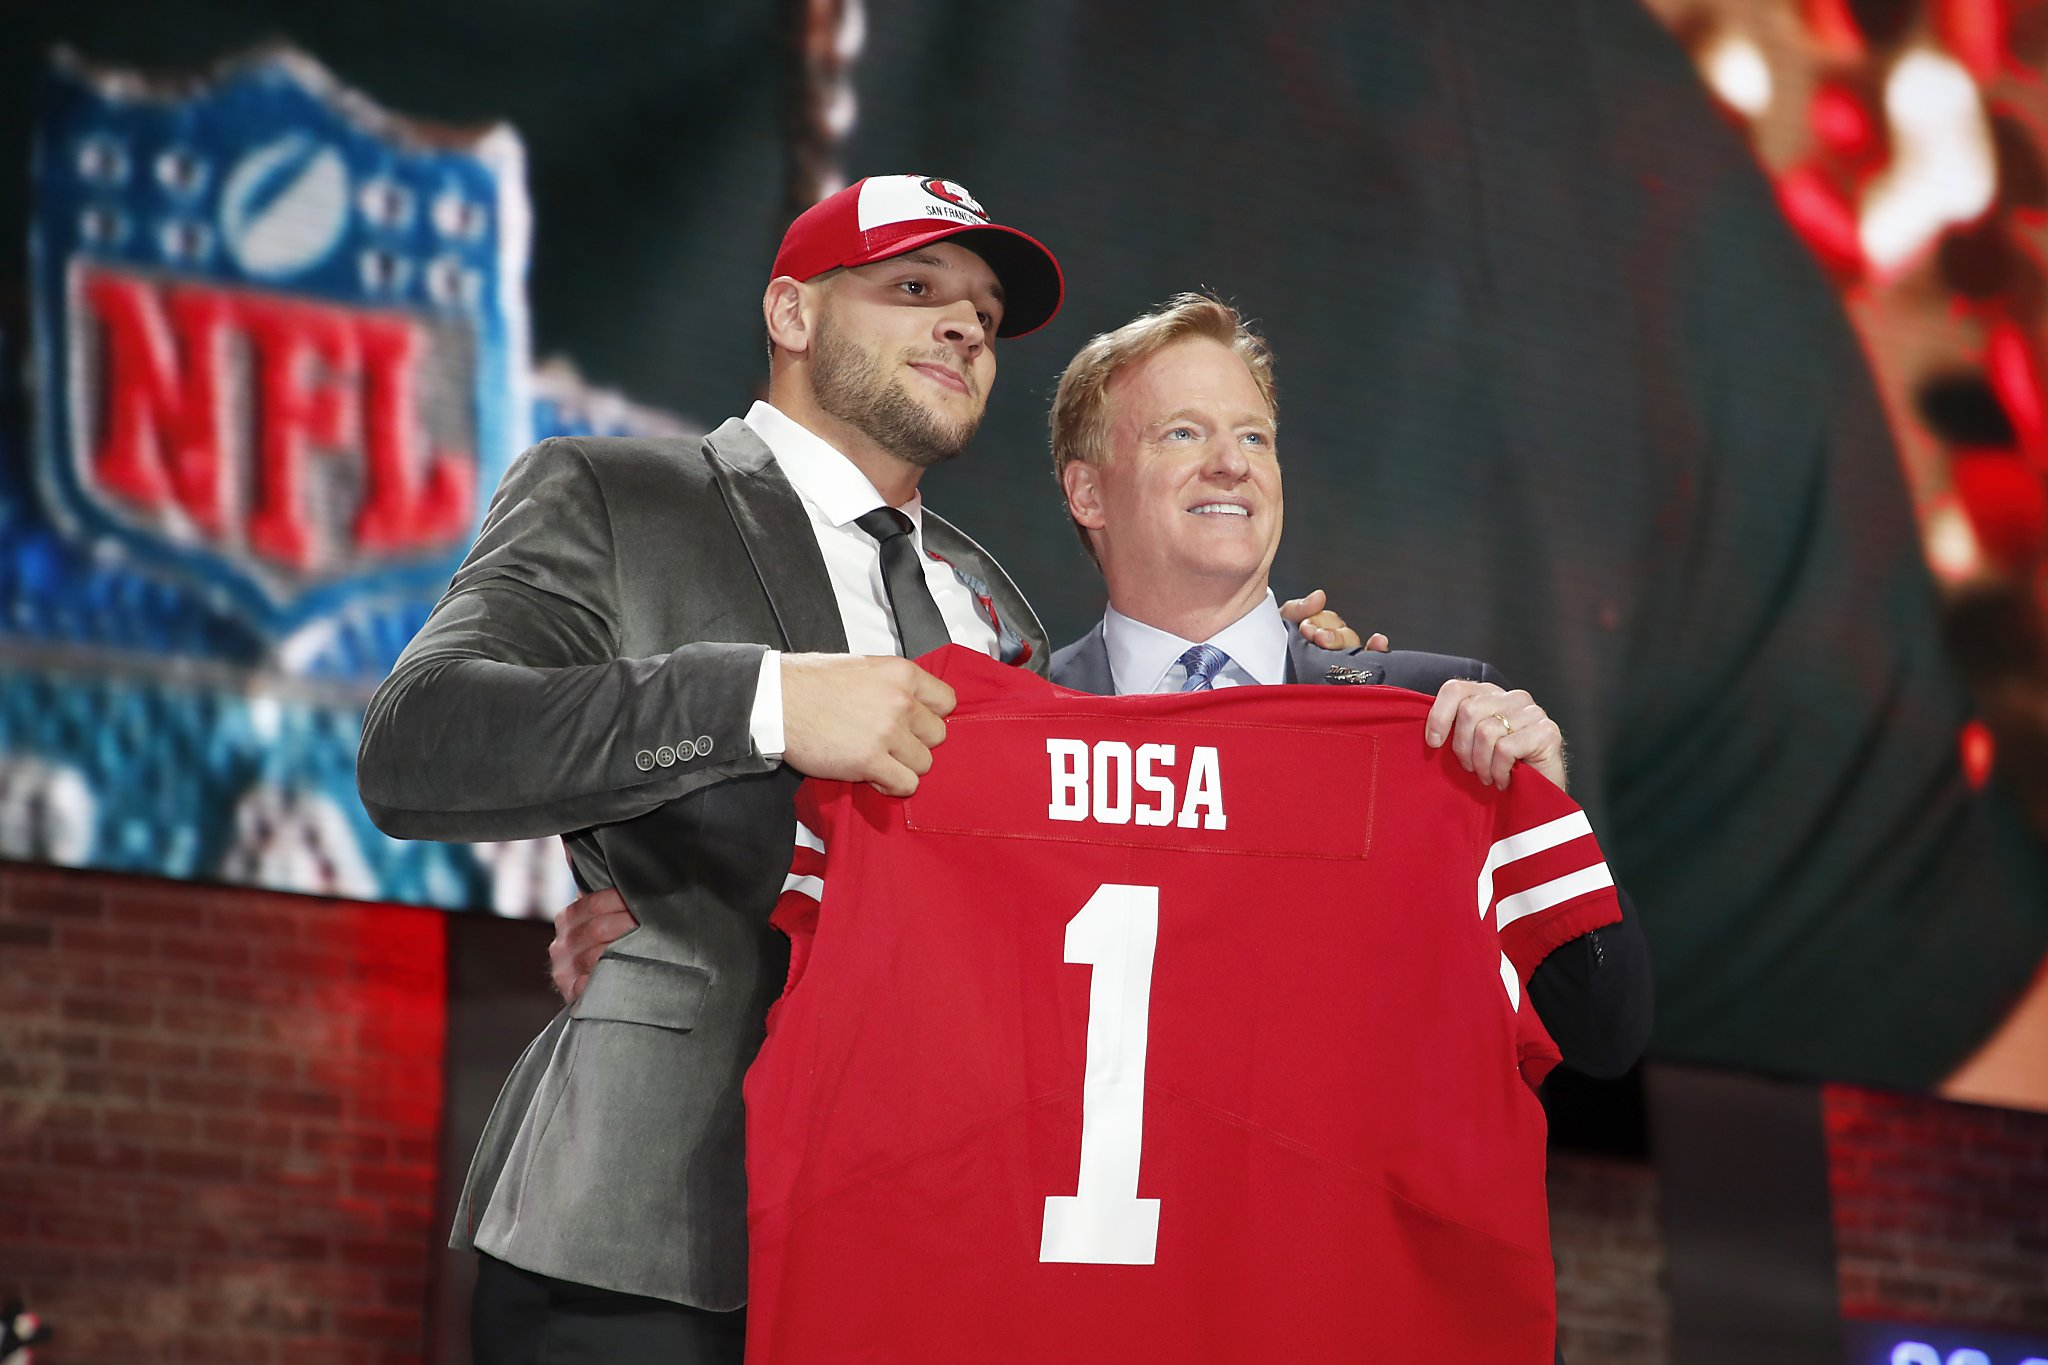 aff25cea 49ers draft pick Nick Bosa getting pass for his political posts ...